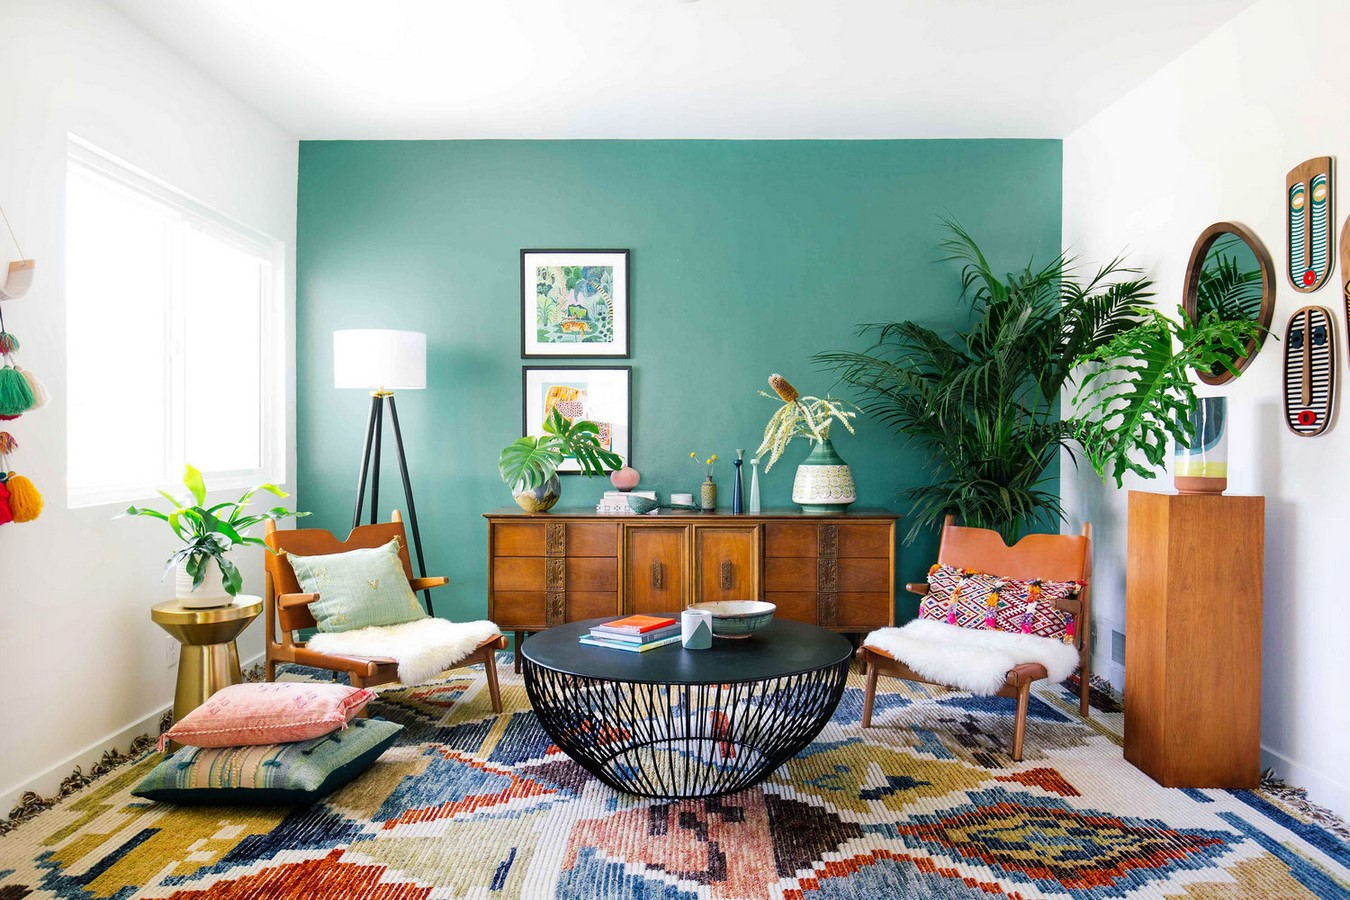 BOHO CHIC WITH ECLECTIC AMBIANCE - Sheet3